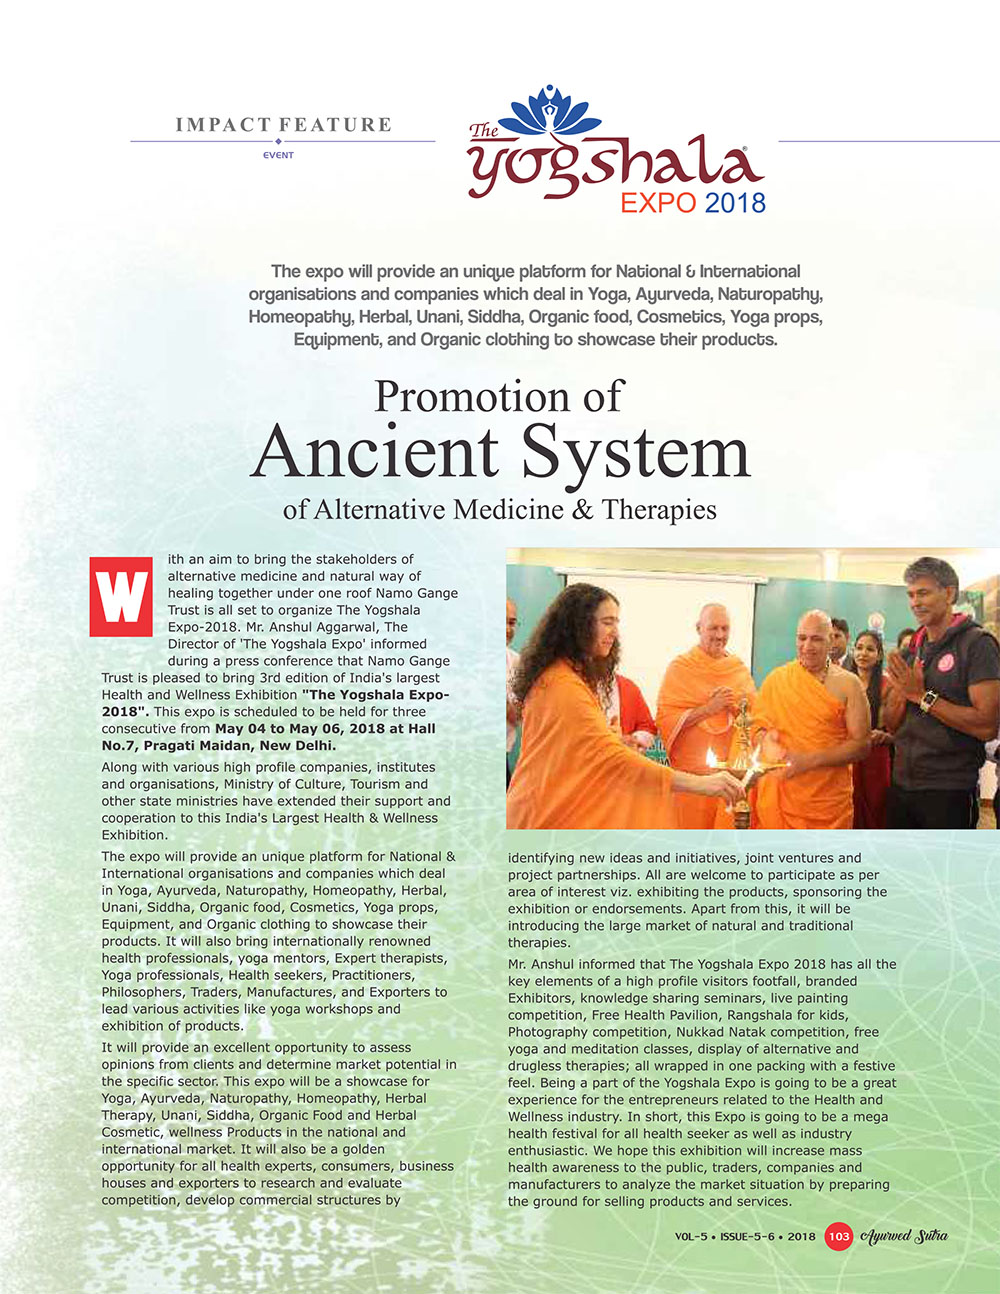 Ayurvedsutra Vol 05 issue 05 06 105 - Promotion of Ancient System of Alternative Medicine & Therapies